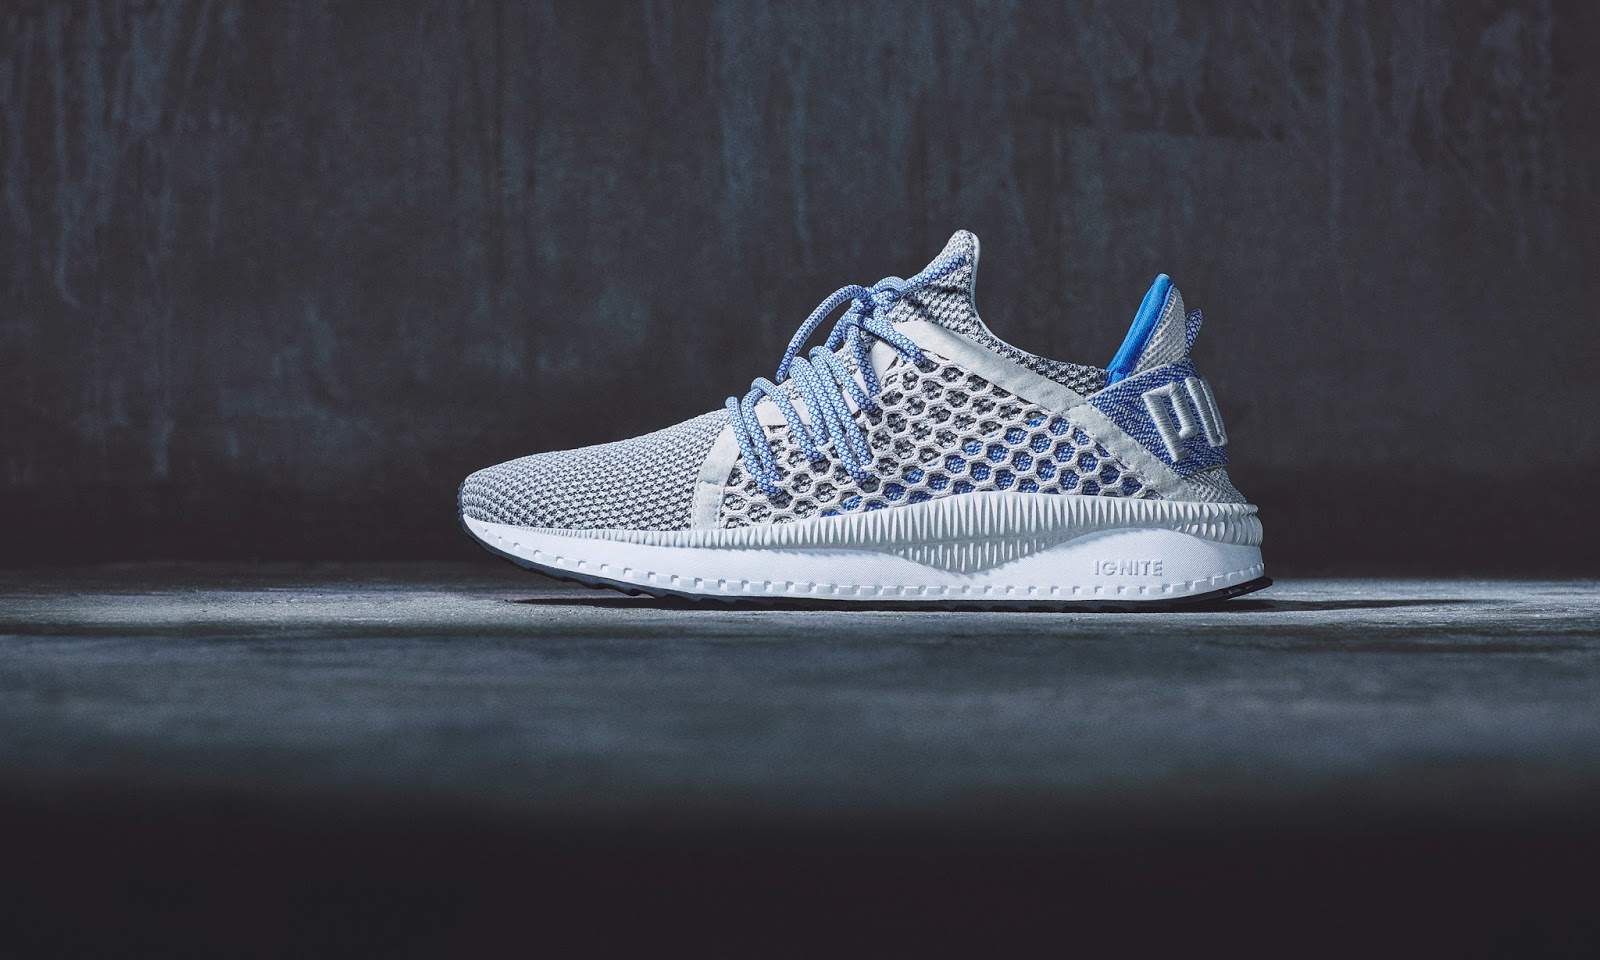 1c0f38984 First Look: PUMA TSUGI NETFIT. Continuing their commitment to developing  game-changing ...